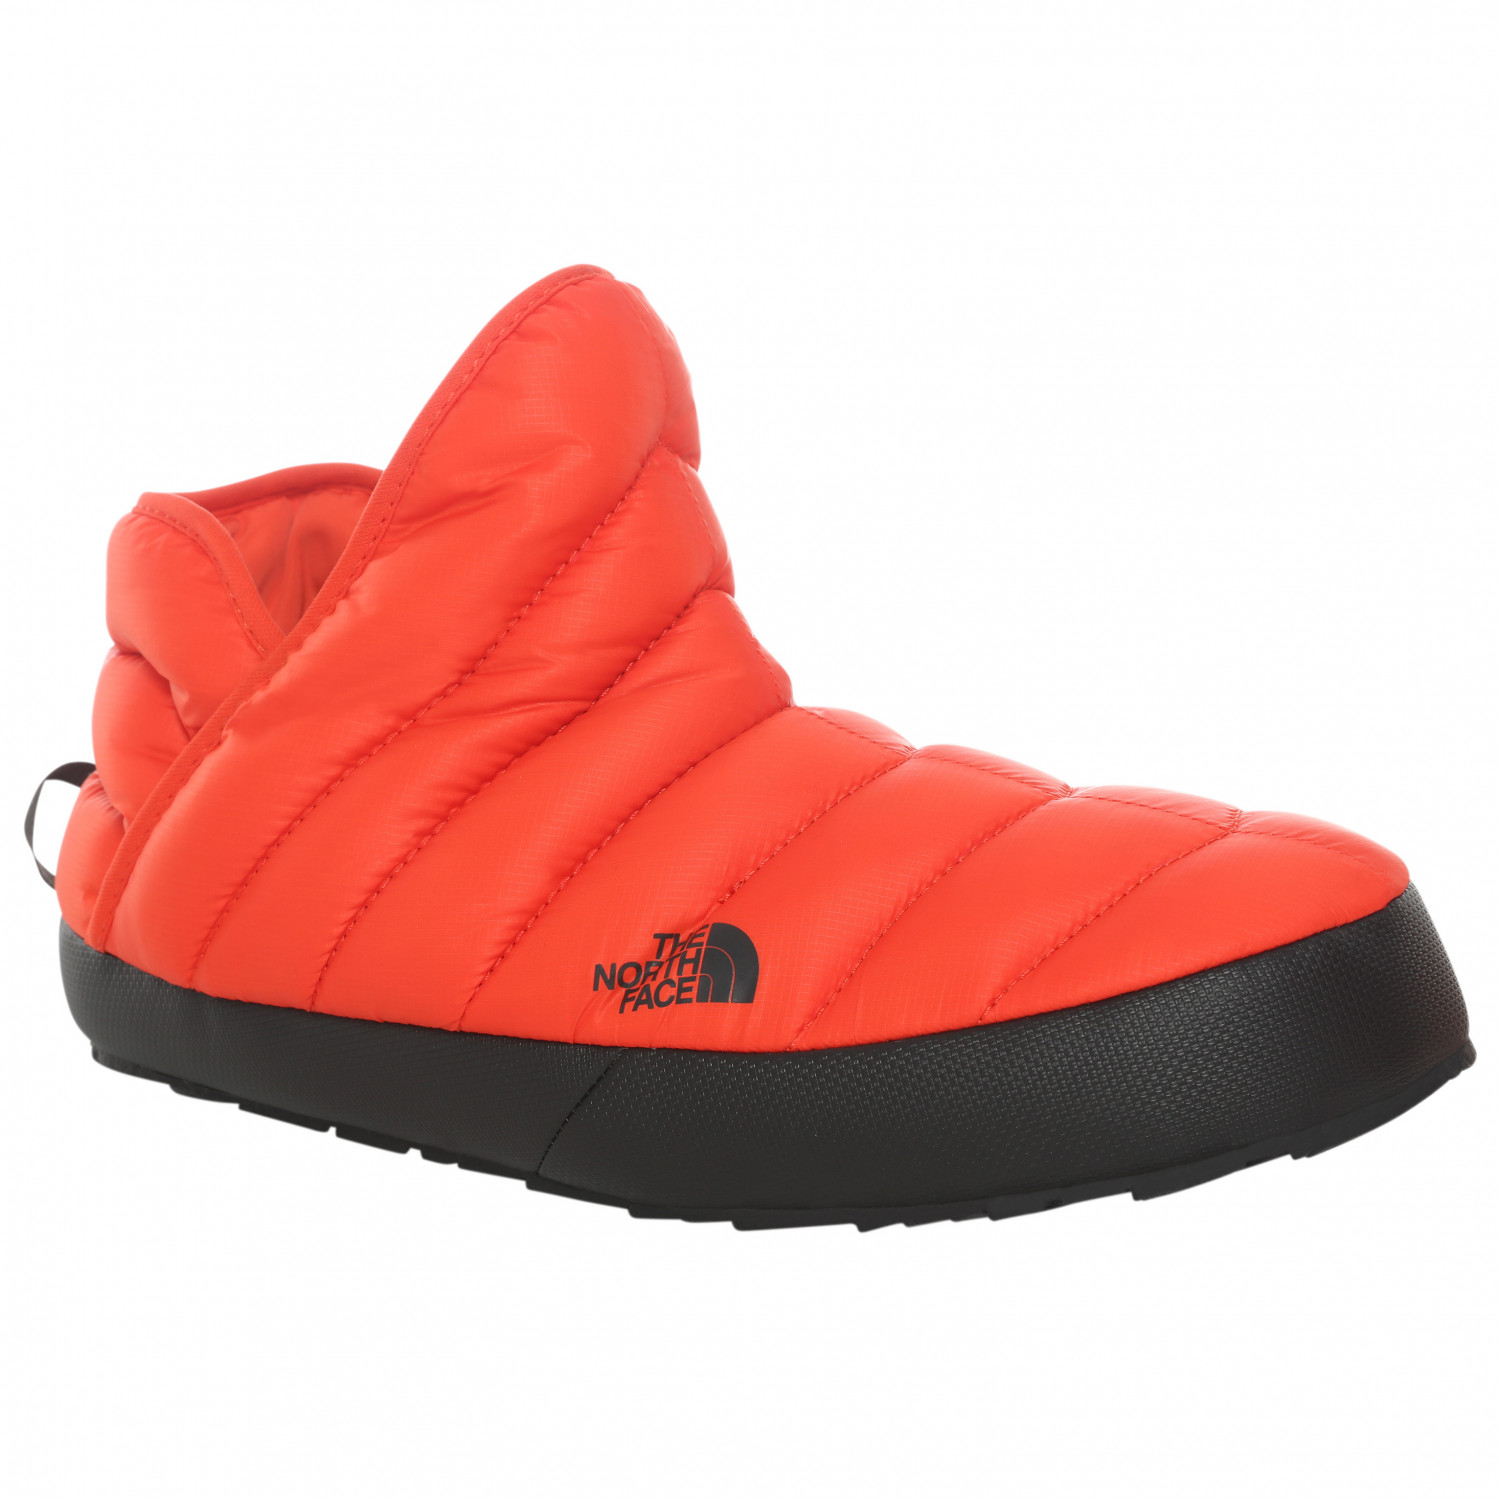 9f547cc56 The North Face - Thermoball Traction Bootie - Slippers